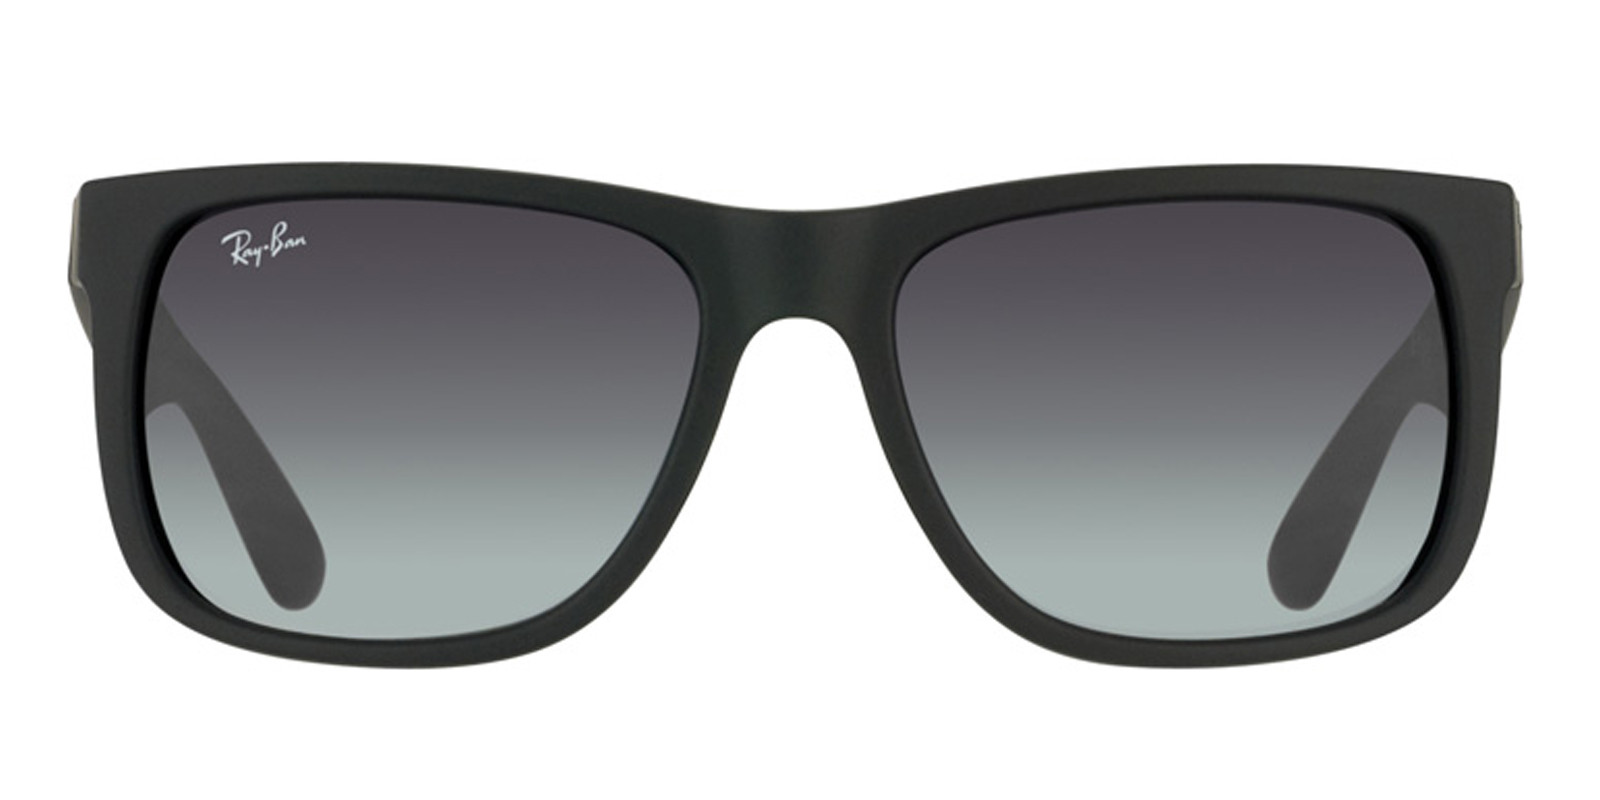 1072cc9796 Lentes Ray Ban Aumento « One More Soul